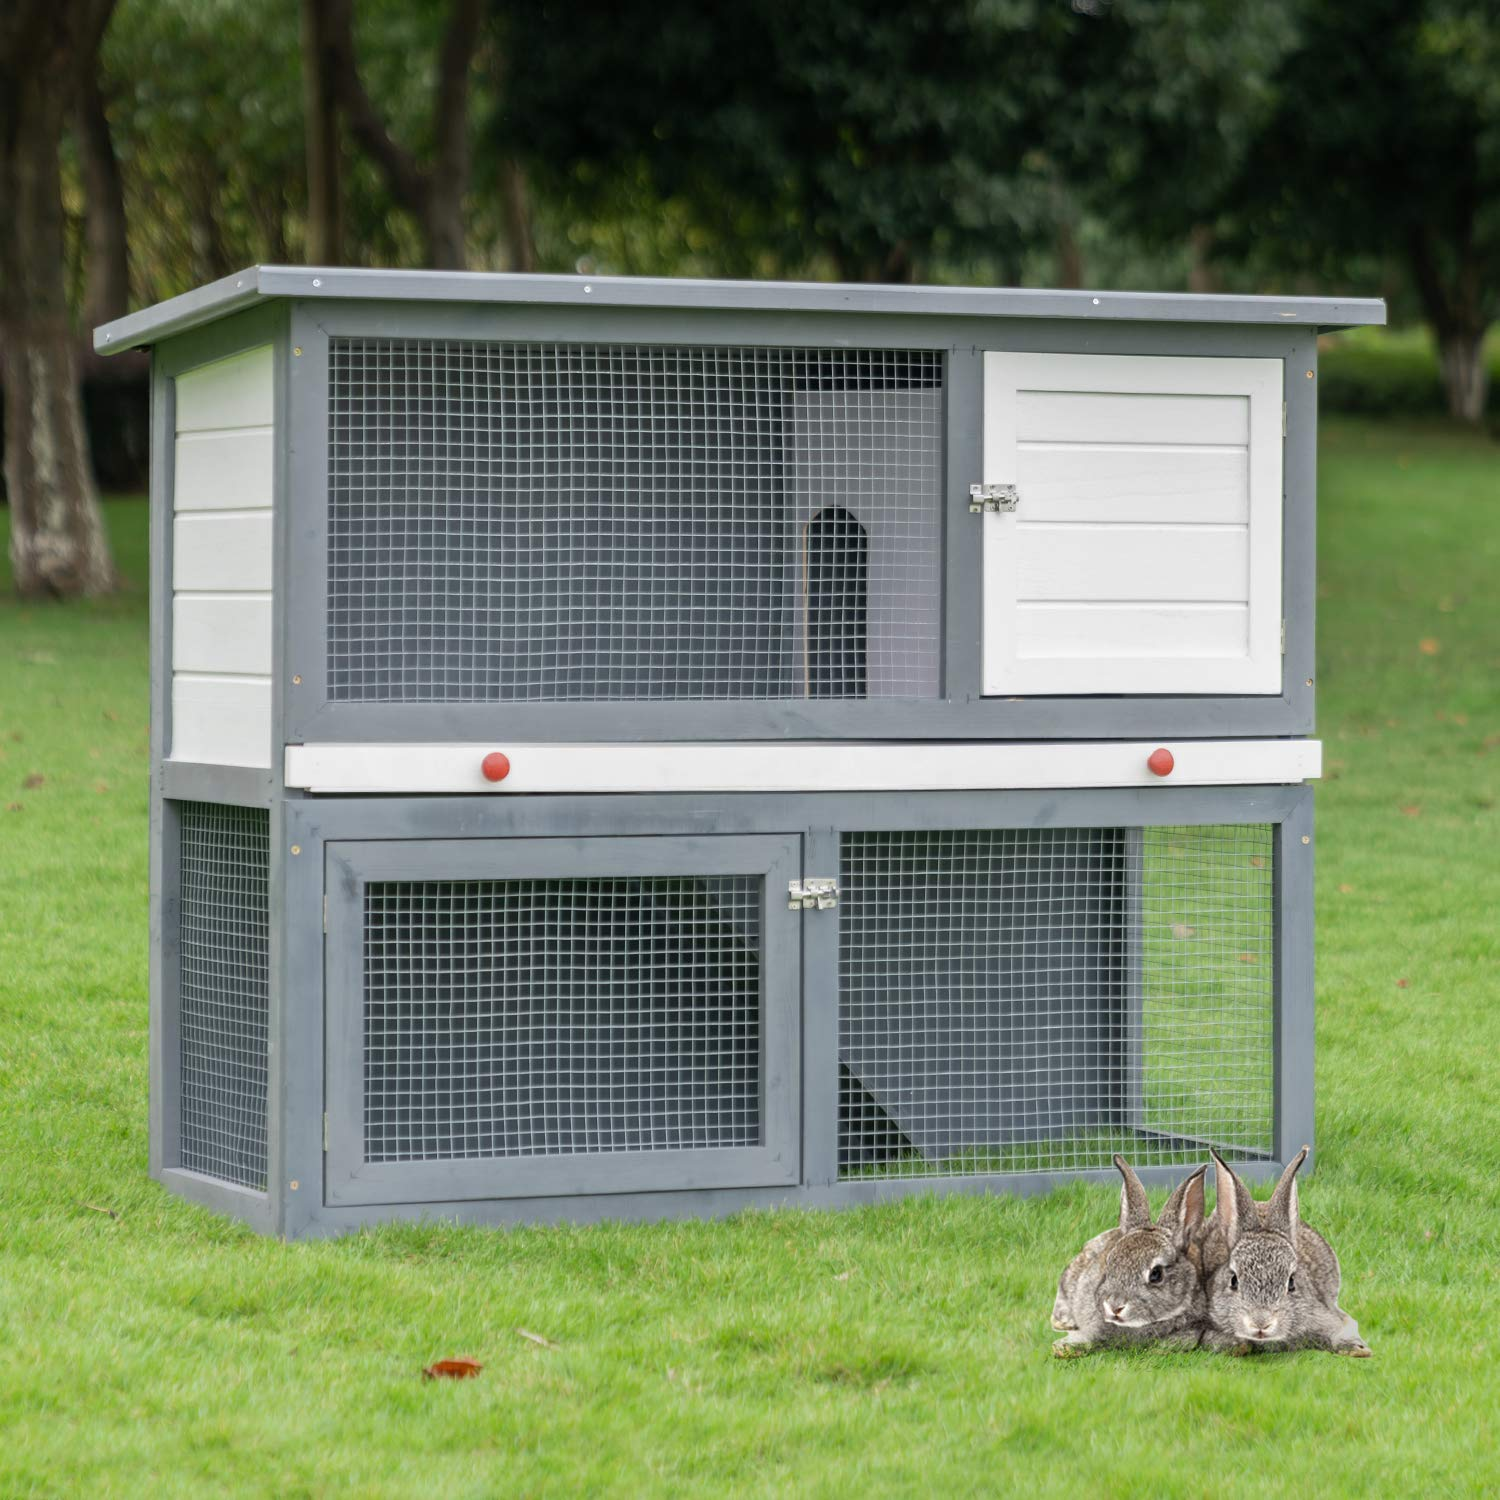 Scurrty 8 Stories Rabbit Hutch Pet Hutch Animal Hutch for Small Animals  Wooden Bunny House with Run Bunny House Indoor & Outdoor